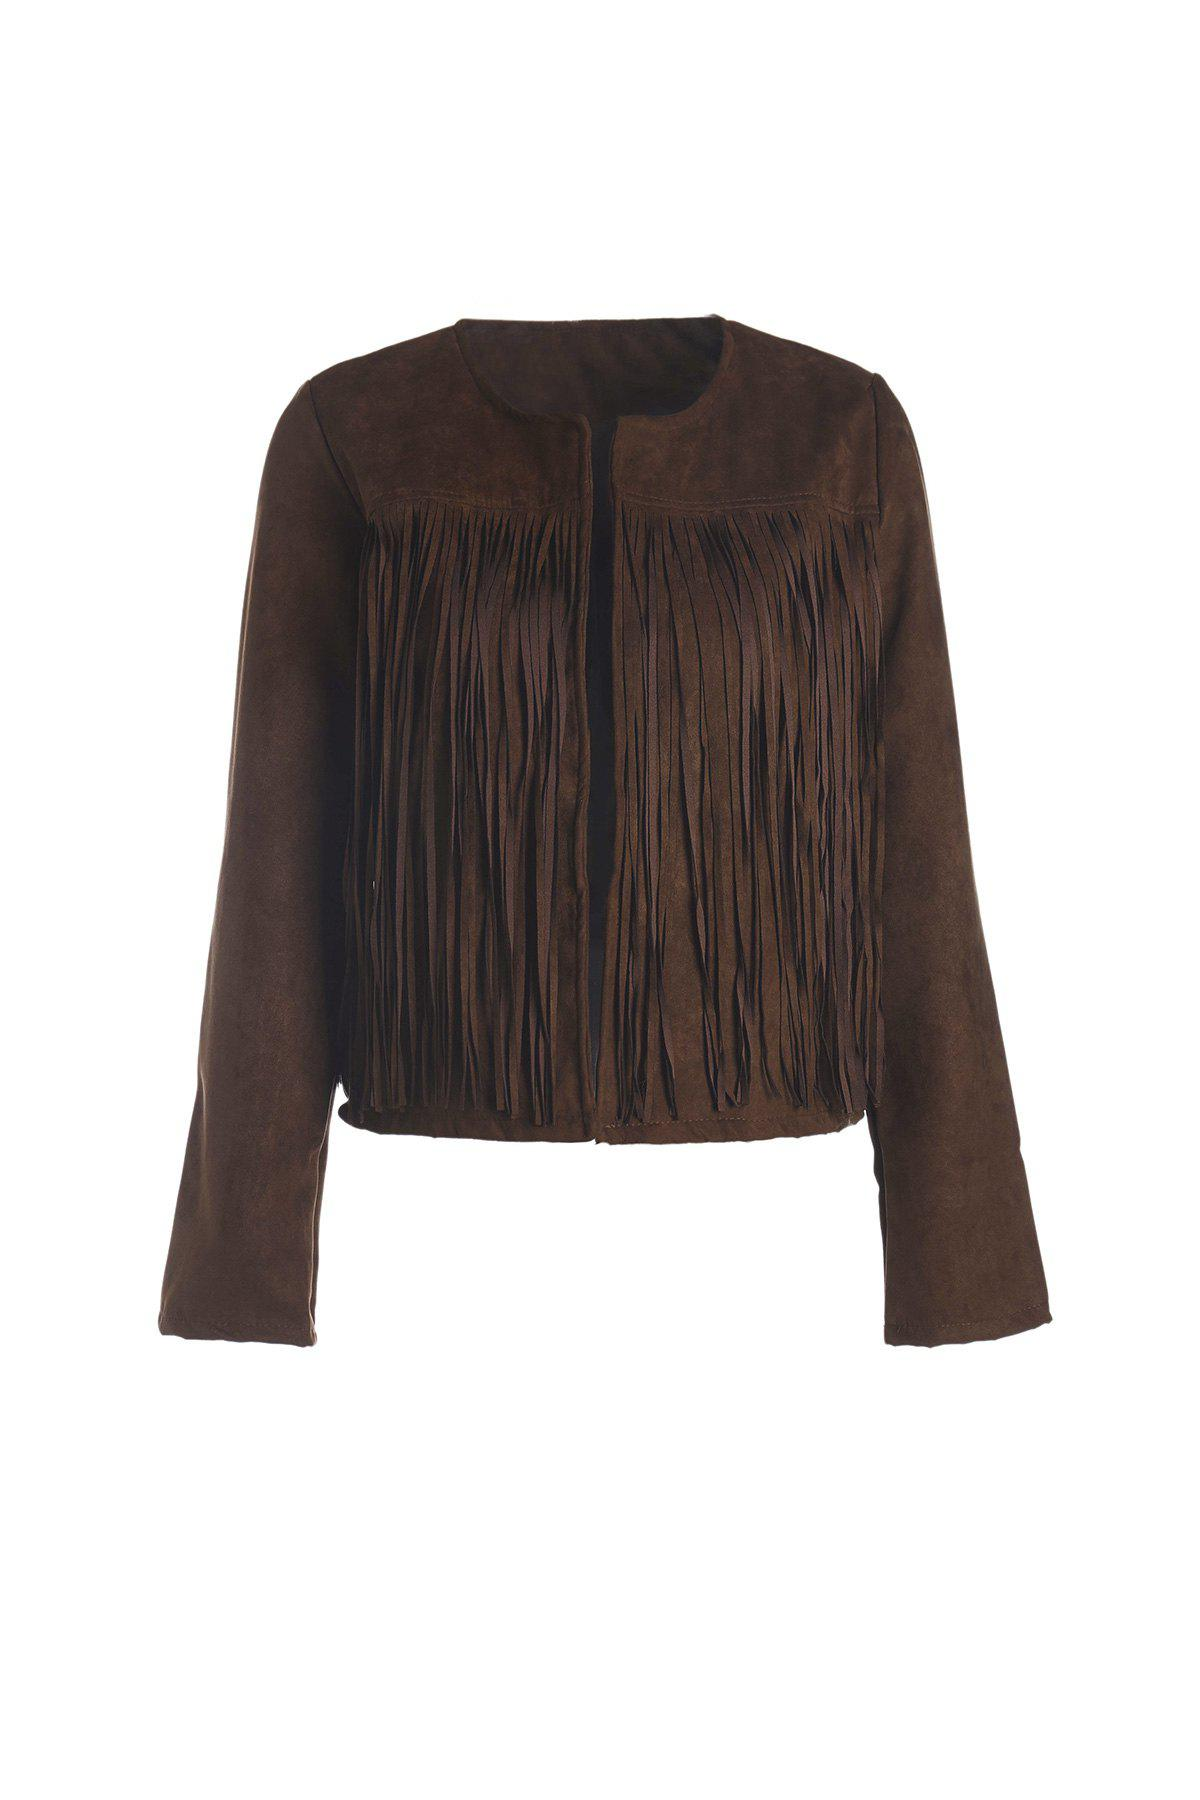 Stylish Round Neck Long Sleeve Fringed Solid Color Women's Jacket - COFFEE M